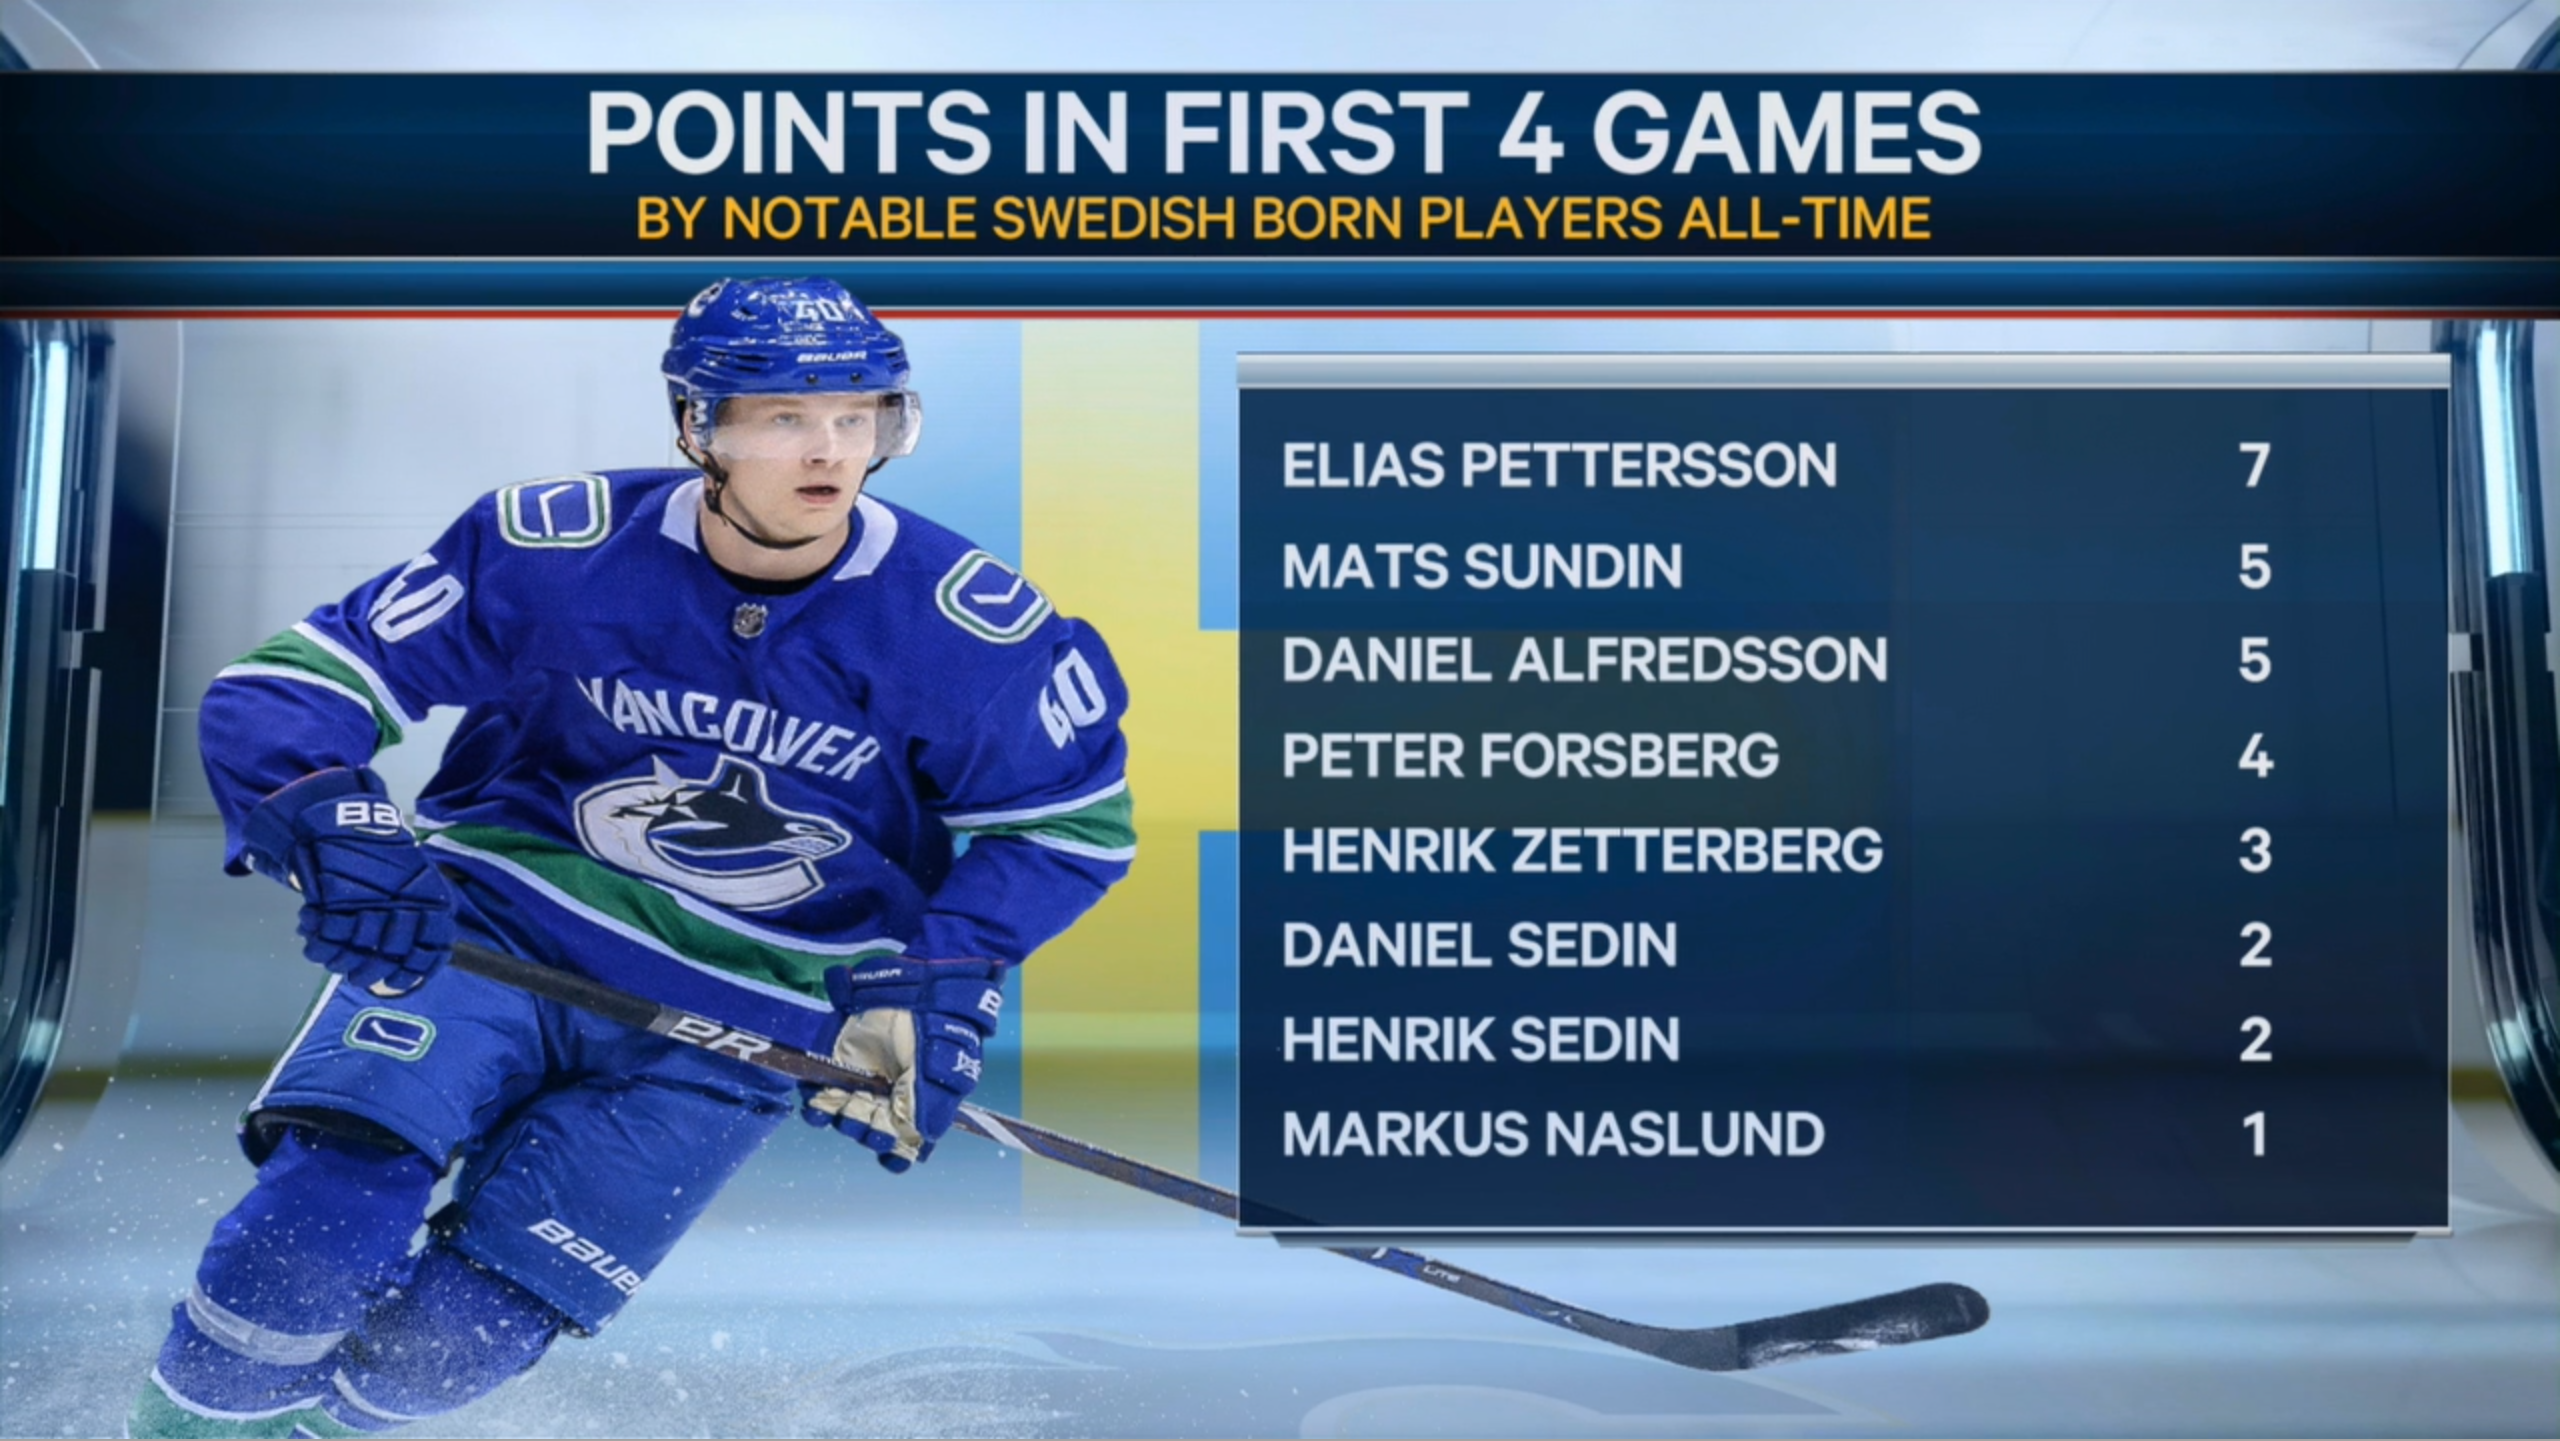 Pettersson has the most points among Swedish born NHLers in their first 4 games